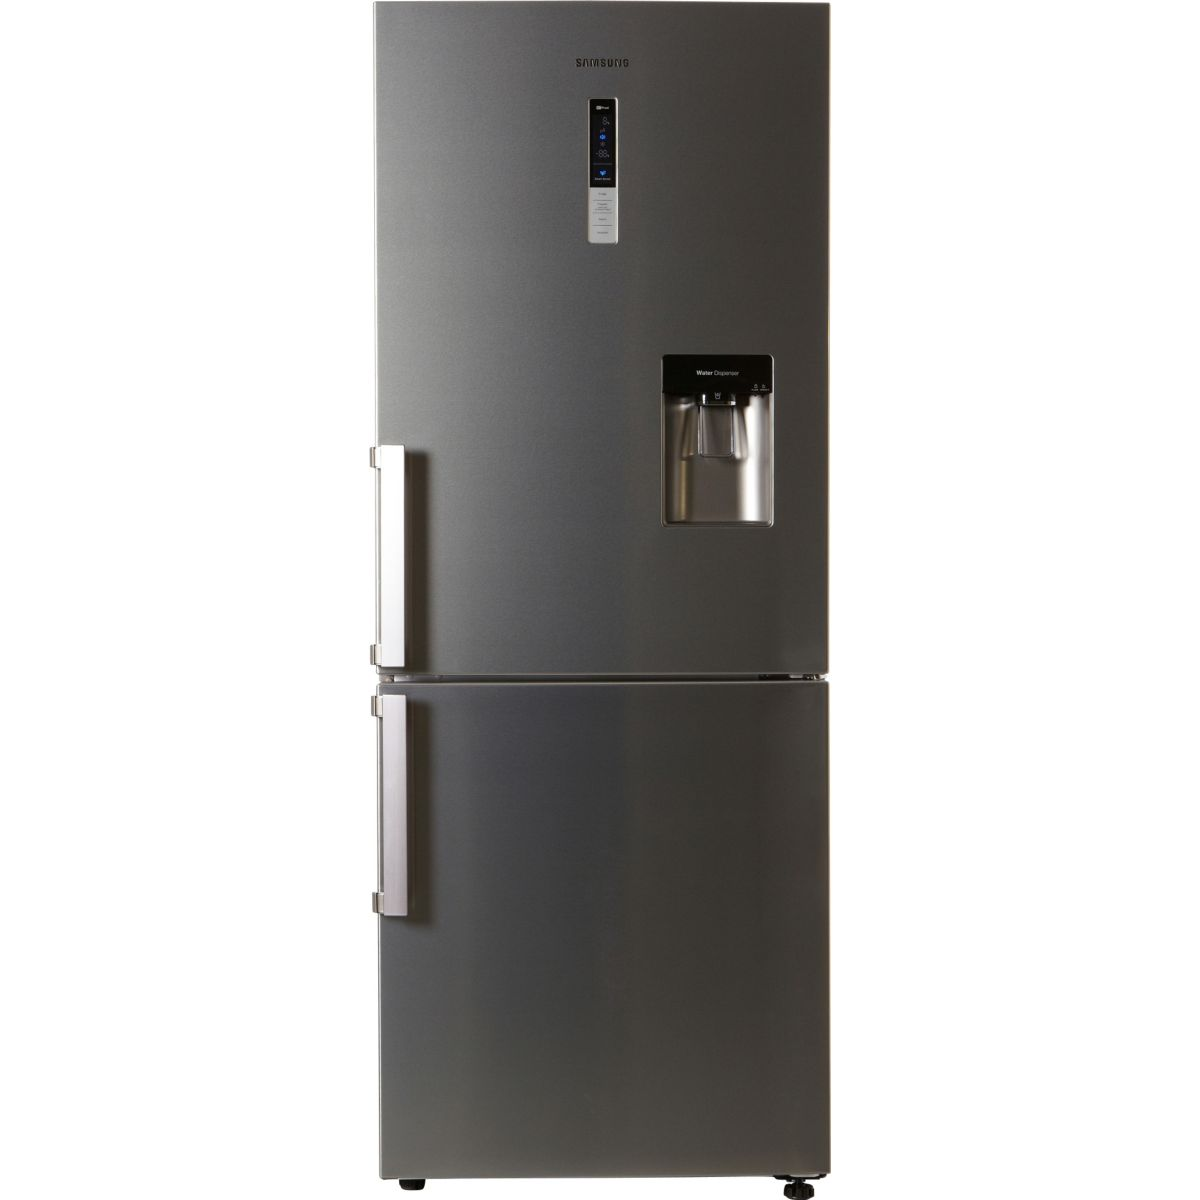 refrigerateur distributeur d 39 eau samsung. Black Bedroom Furniture Sets. Home Design Ideas